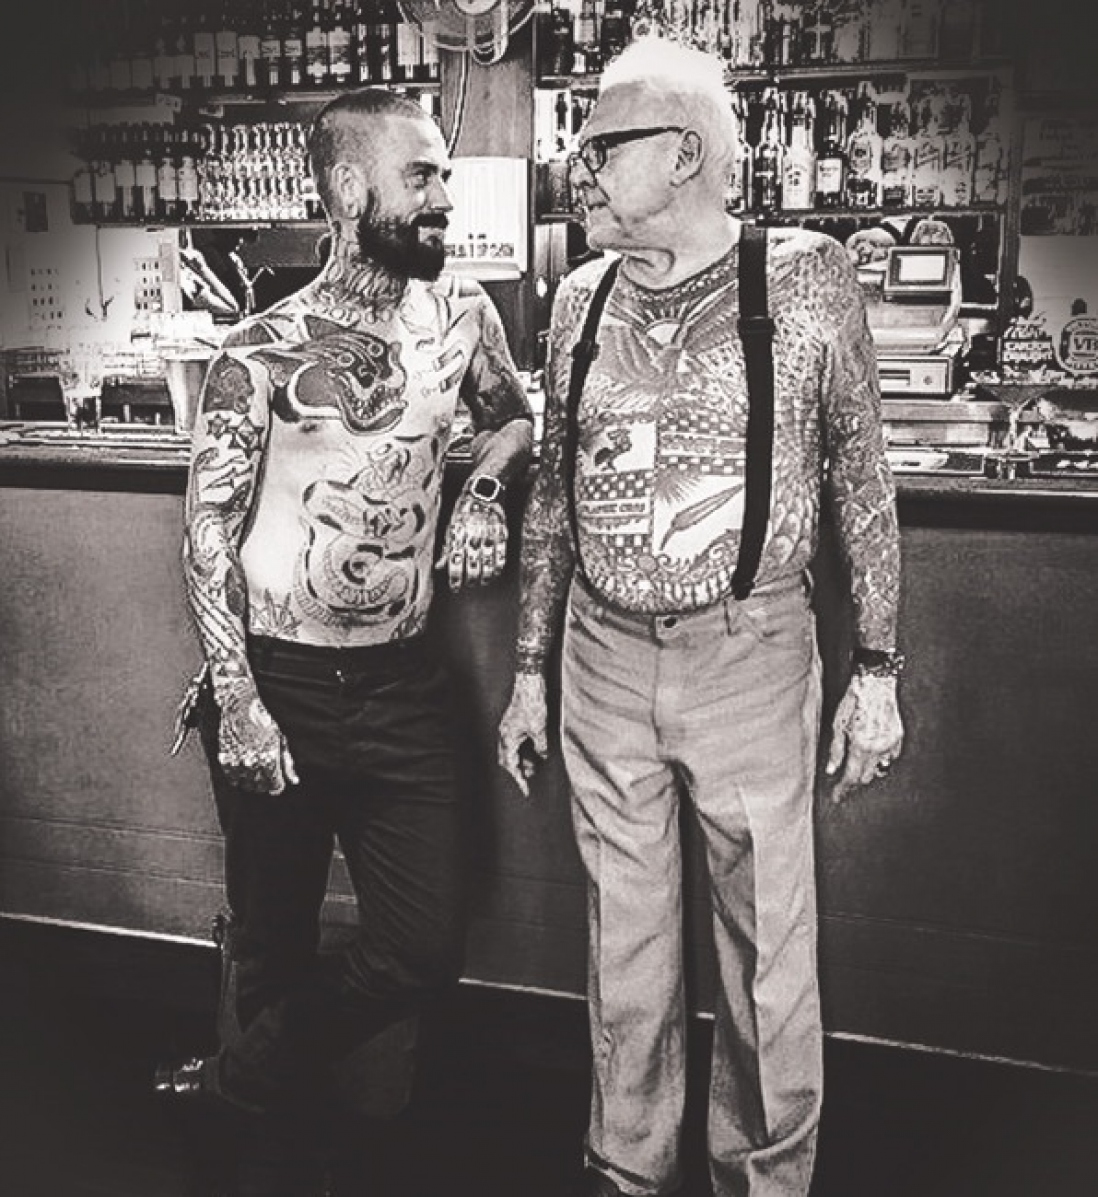 Two men at a bar, shirtless, showing their tattoos.